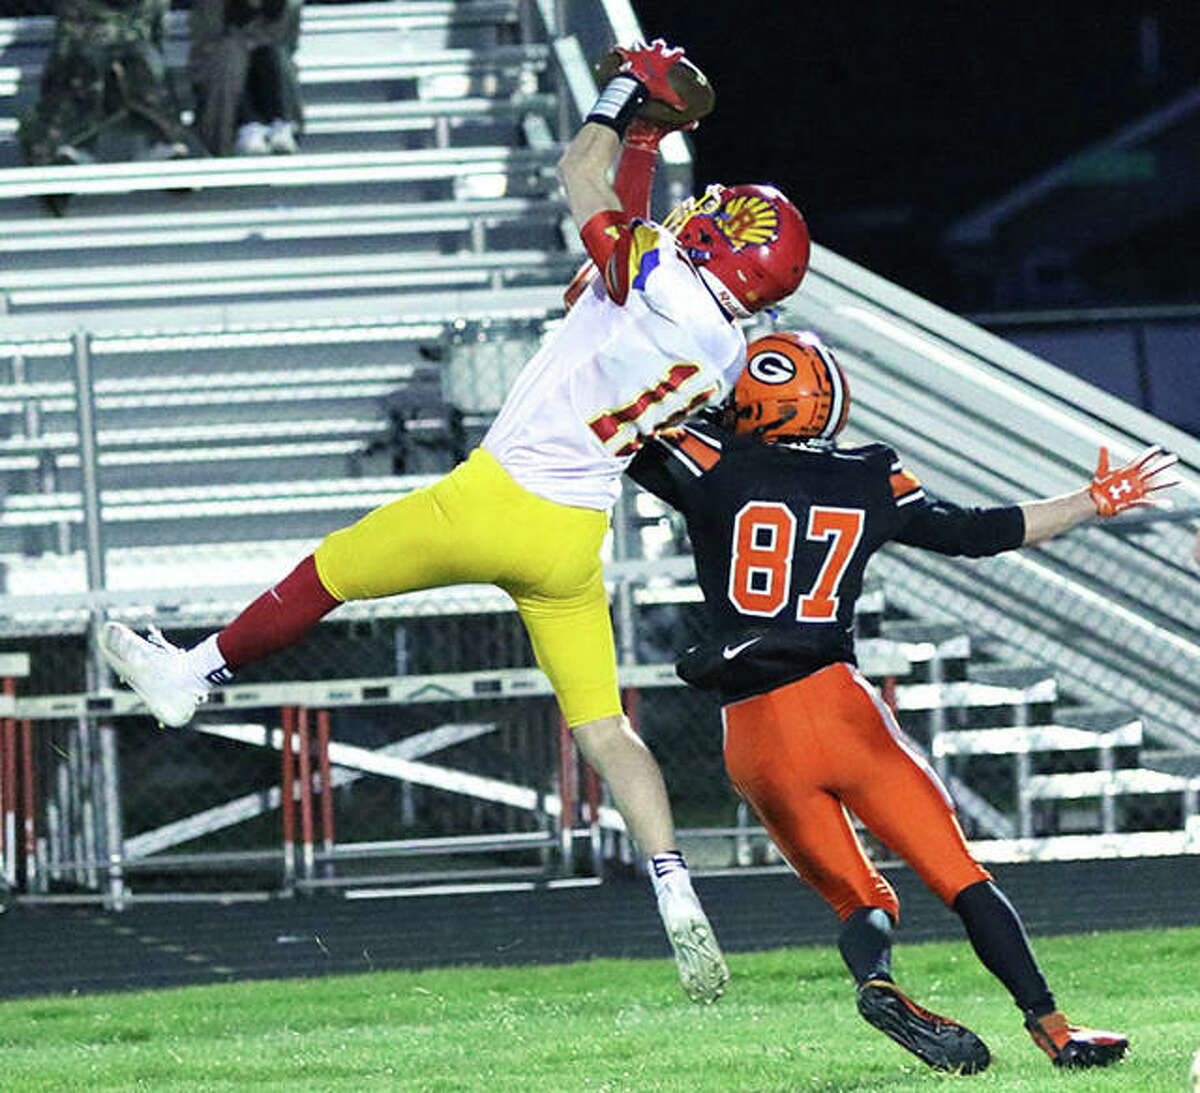 Roxana's Braeden Wells goes up high for an interception of a pass intended for Gillespie's Tanner Whitfield (87) on Friday night at Don Dobrino Field in Gillespie.